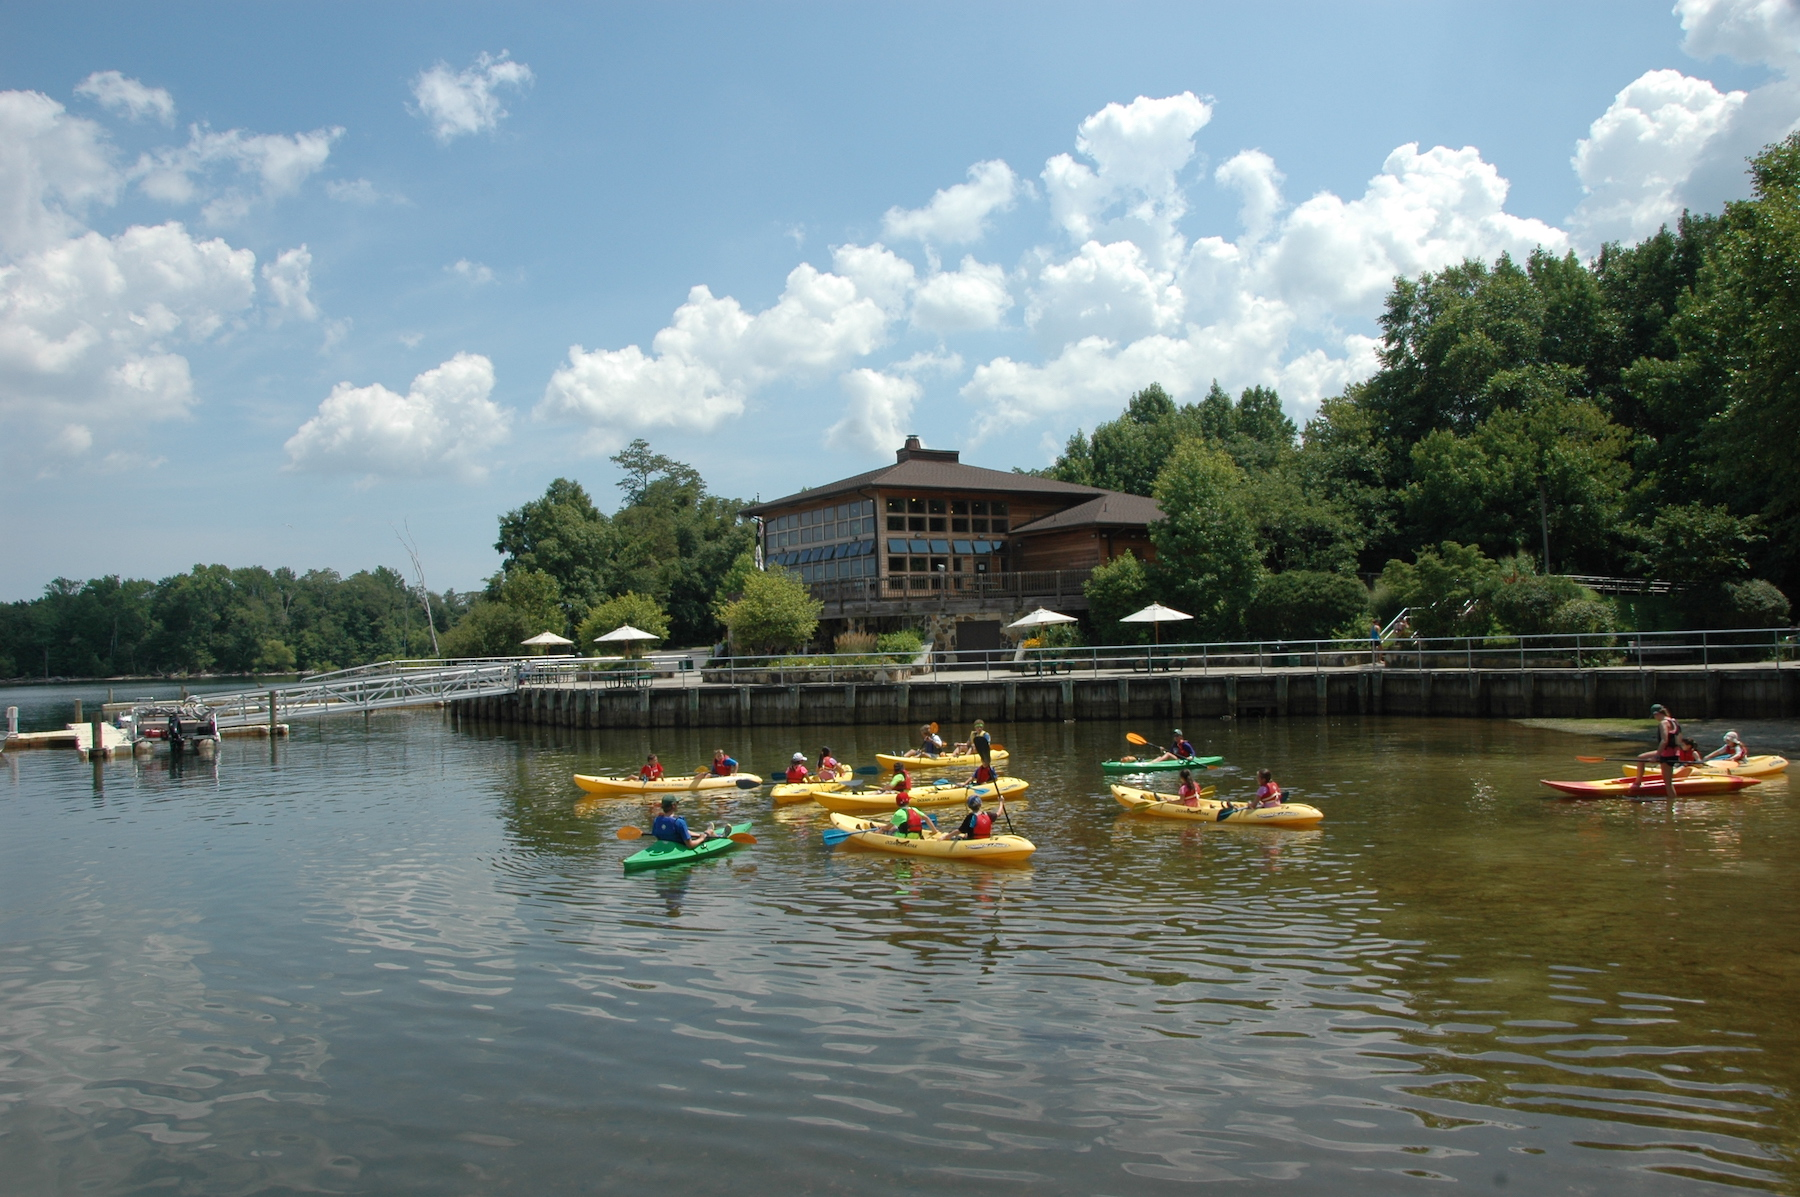 Monmouth County Park System Summer Camps in NJ